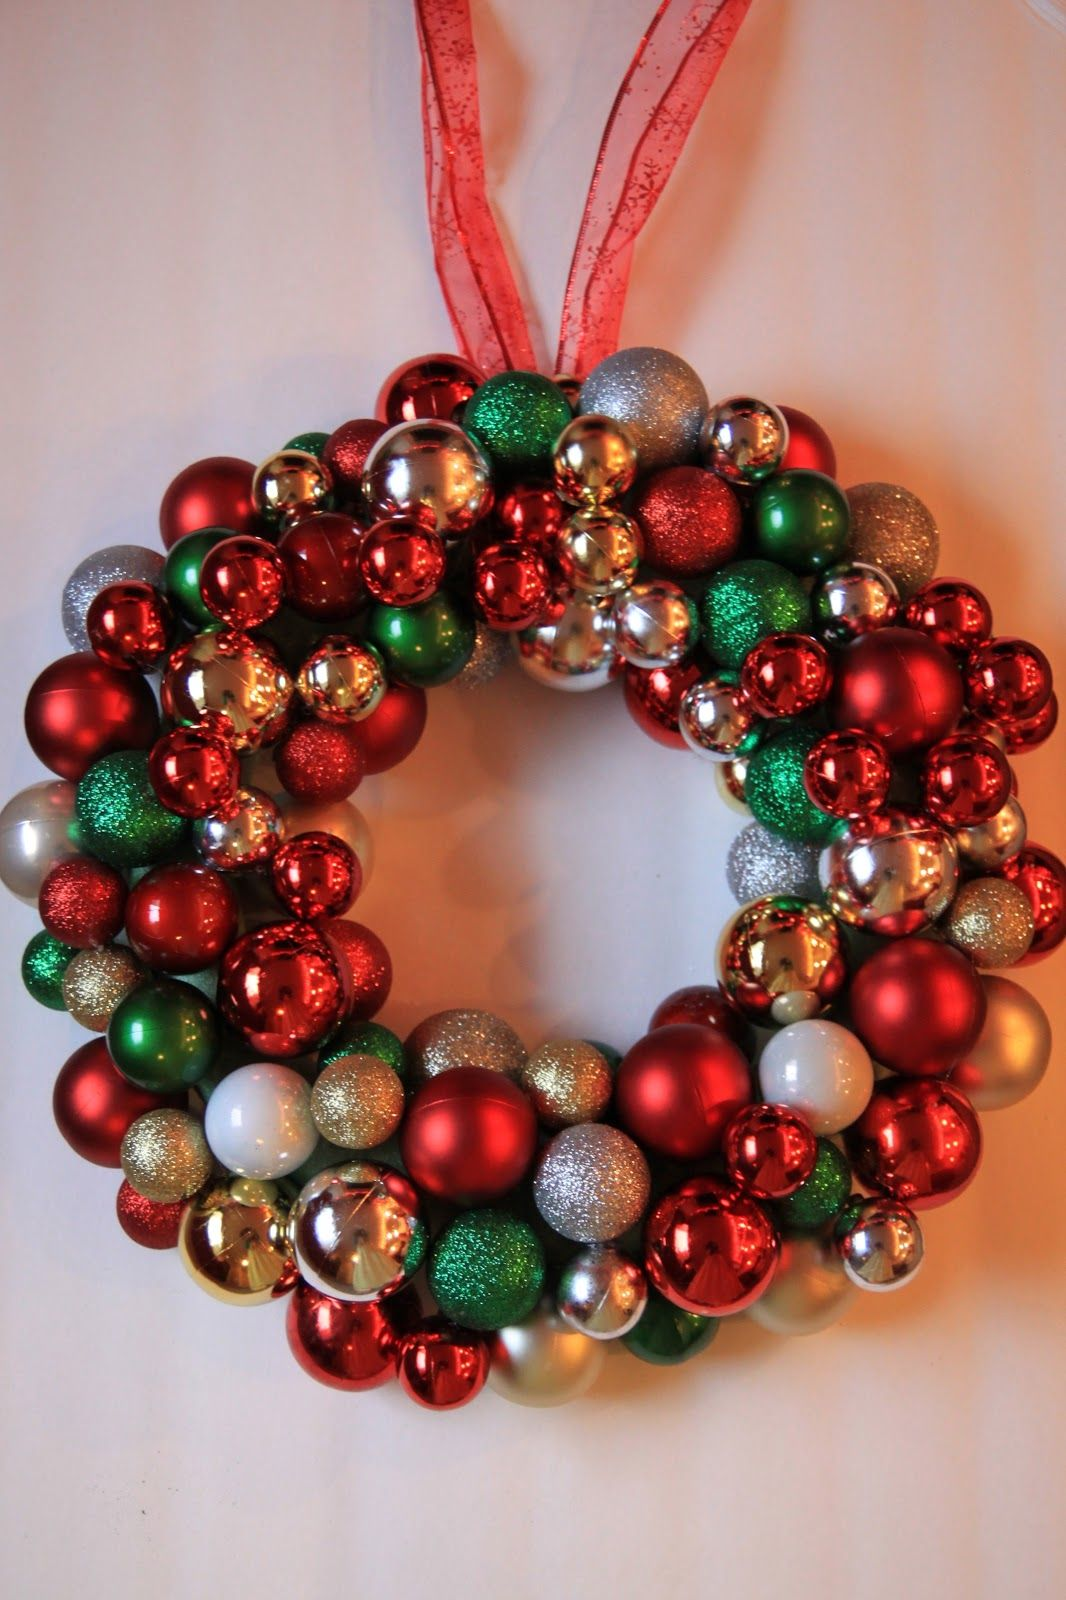 Watch Out For The Woestmans Christmas Bulb Wreath Tutorial Christmas Wreaths Diy Christmas Wreaths Christmas Bulbs